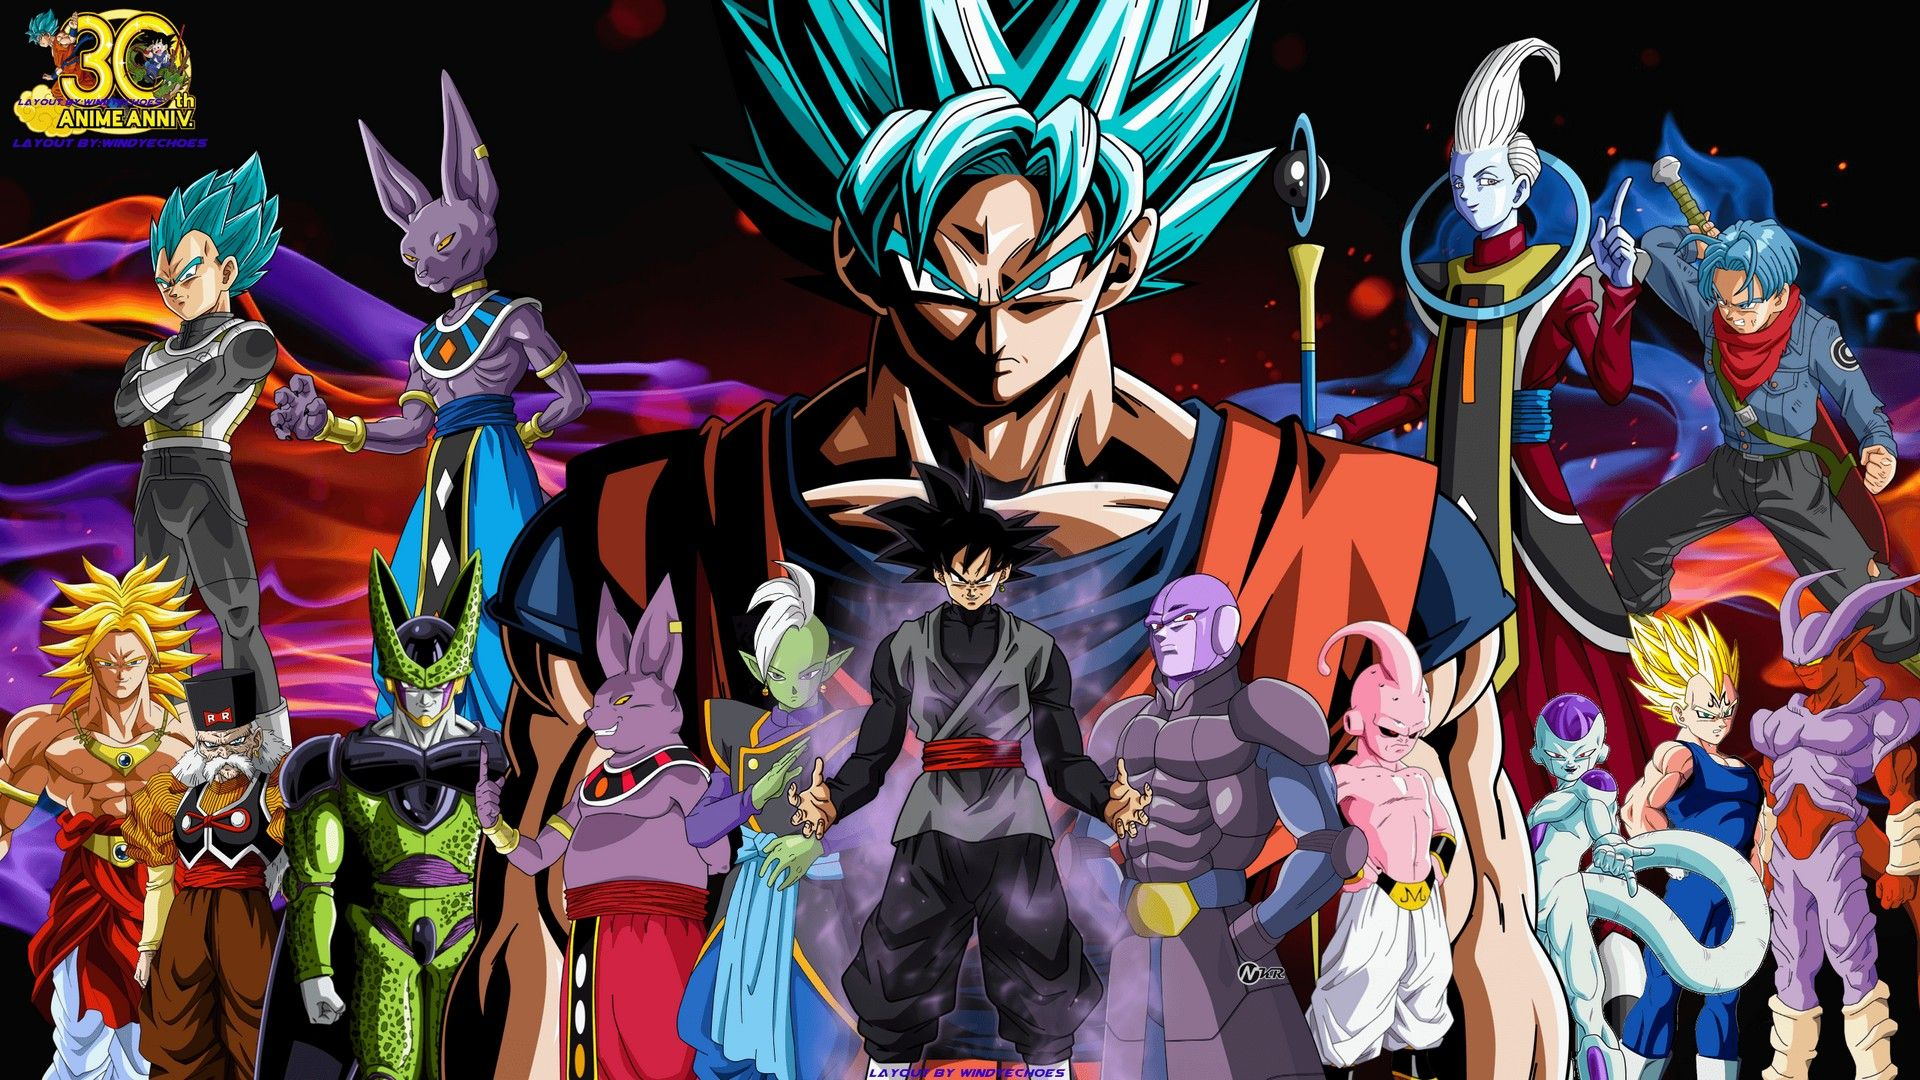 Dragon Ball Super Wallpaper Full Hd 2021 Live Wallpaper Hd Dragon Ball Super Wallpapers Dragon Ball Wallpapers Anime Dragon Ball Super